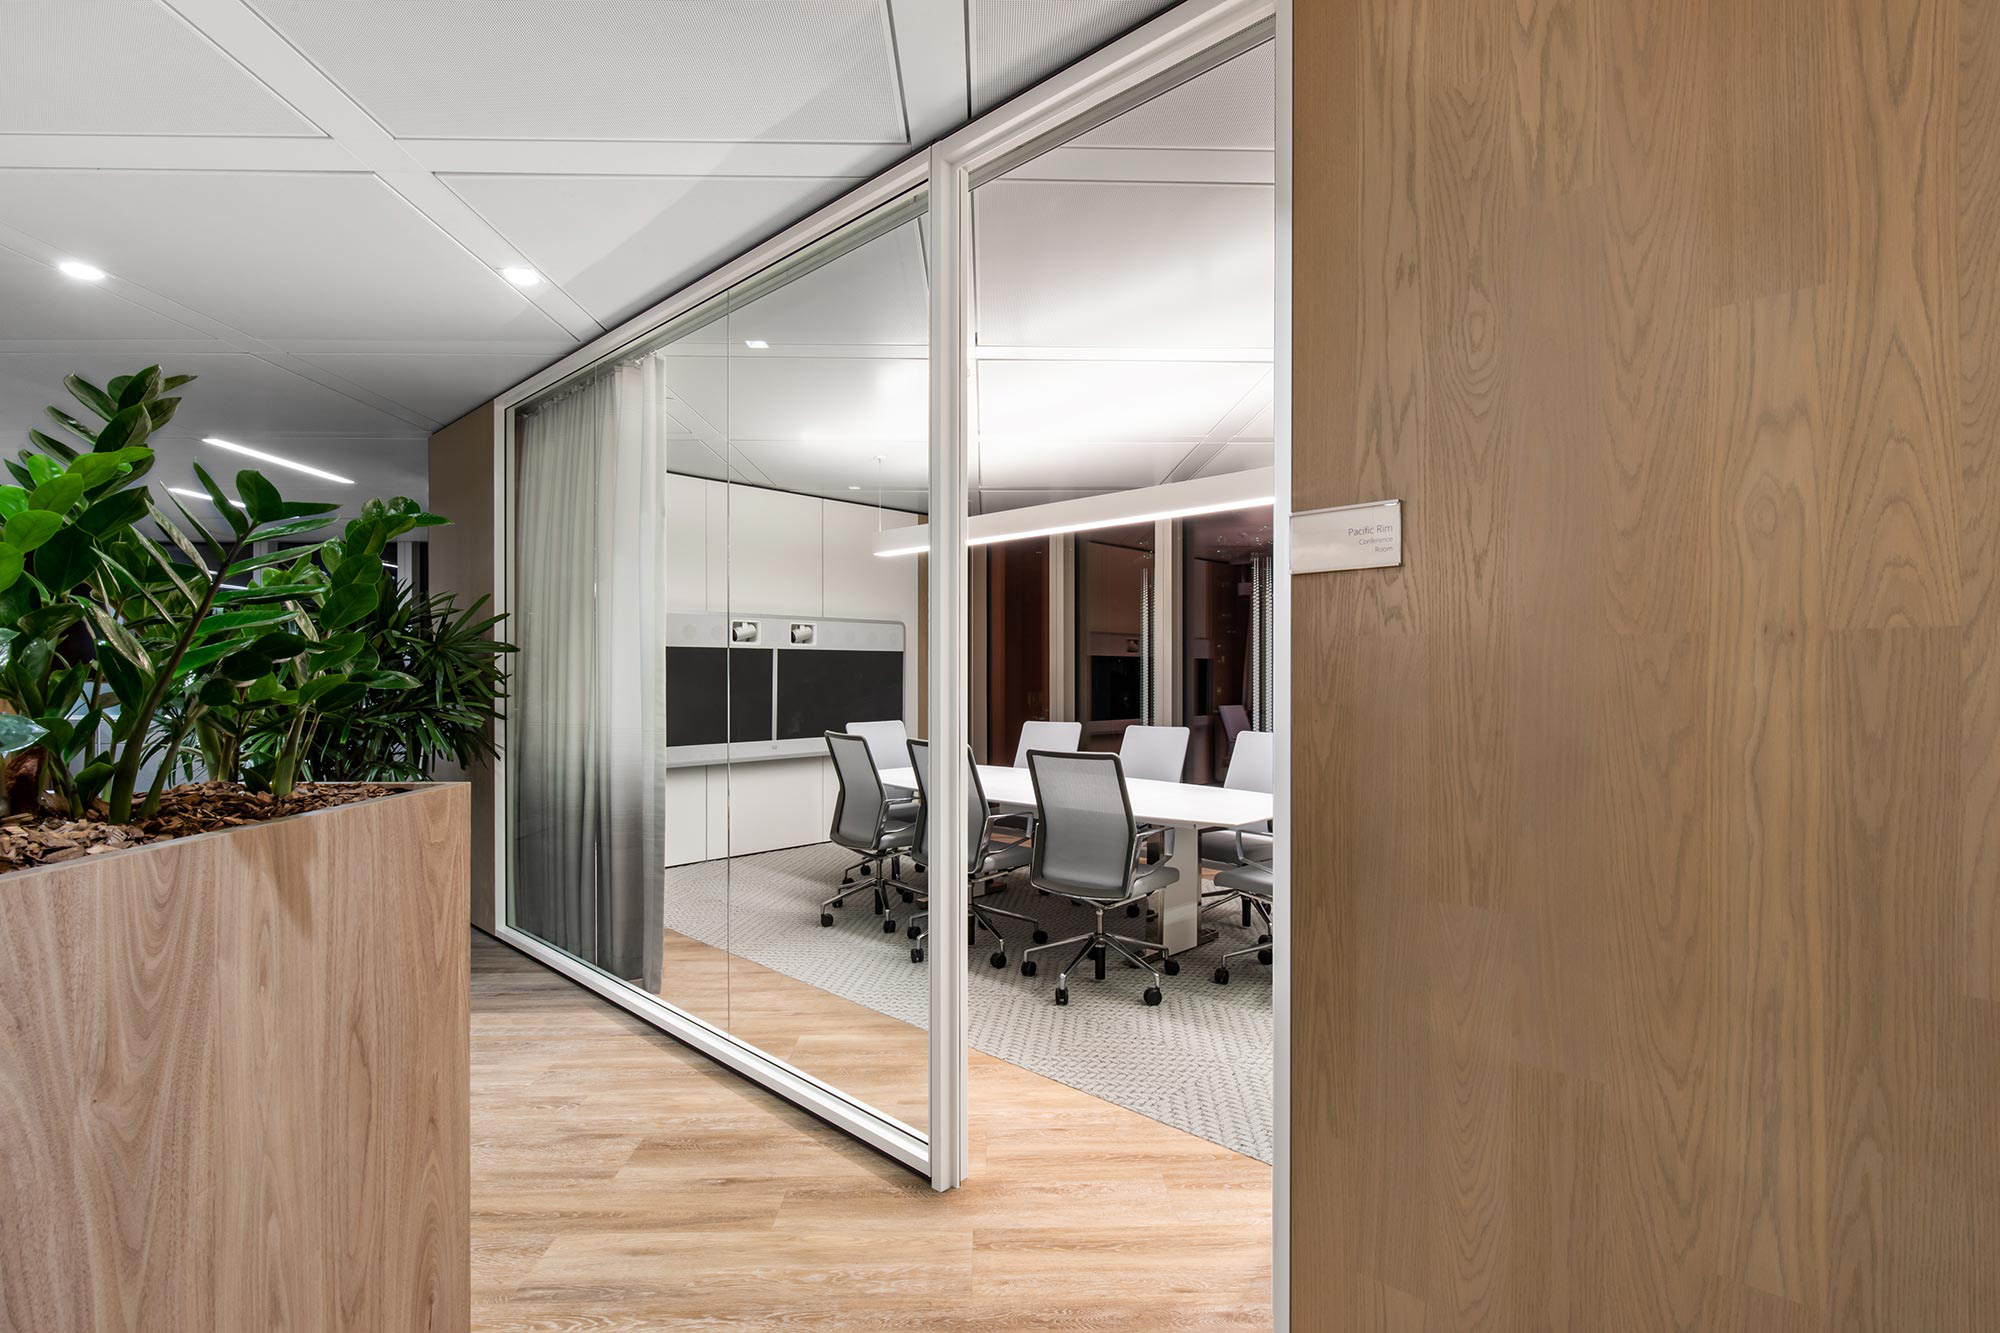 insurance-interior-design-glass-boardroom.jpg